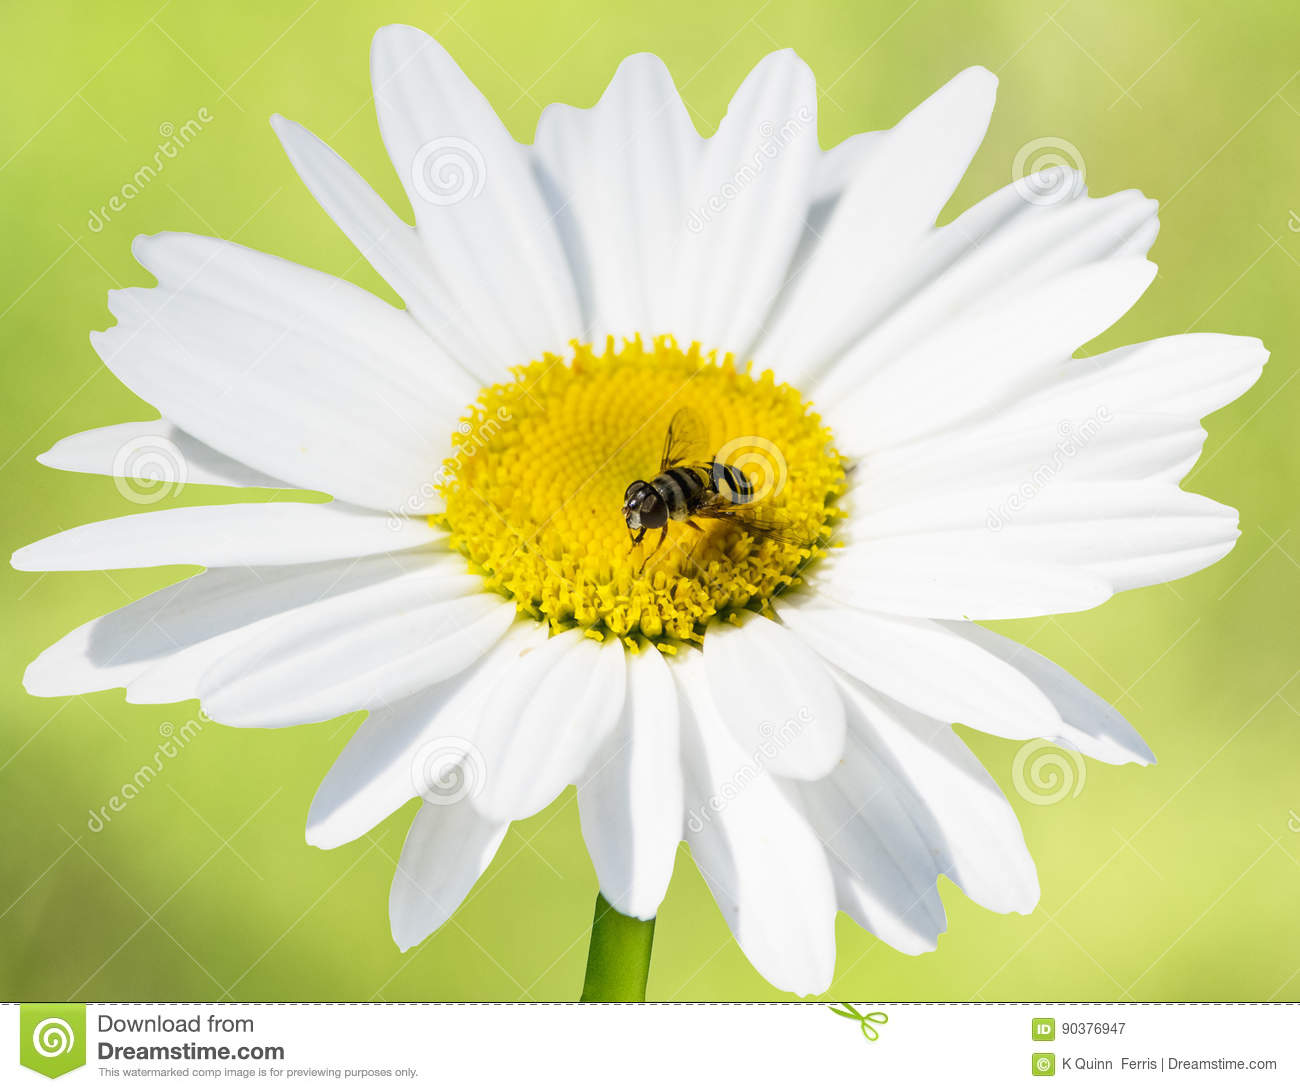 Bee mimic hover fly on daisy on green background stock image image bee mimic hover fly on daisy on green background izmirmasajfo